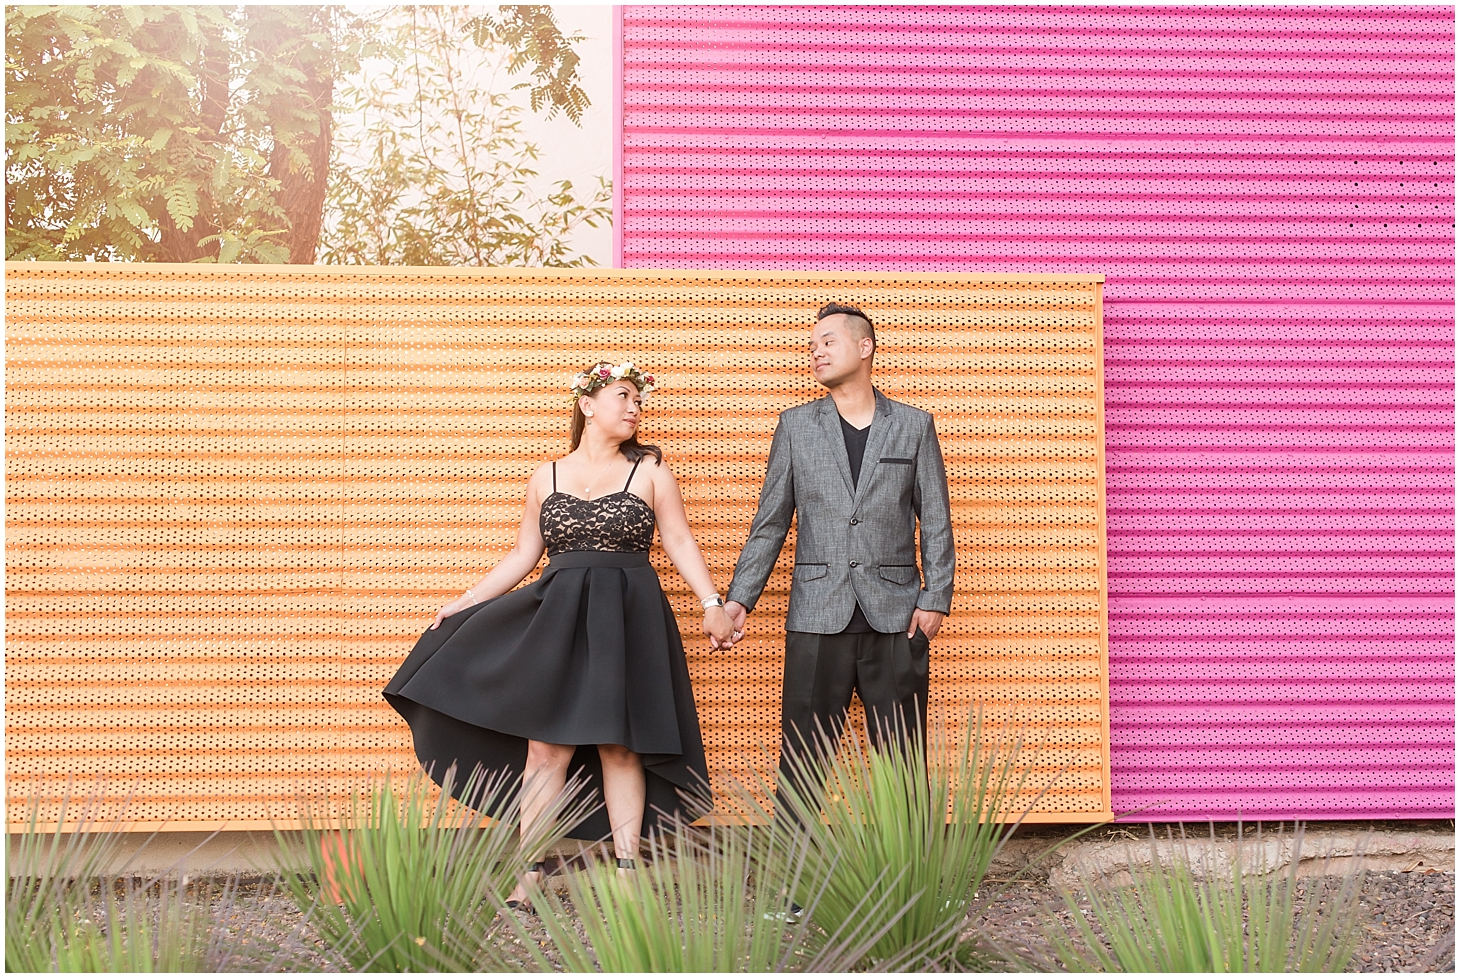 Engagement photo session with Hom Lalab and Van Nguon at Scottsdale Civic Center. Photo by Jade Min Photography.